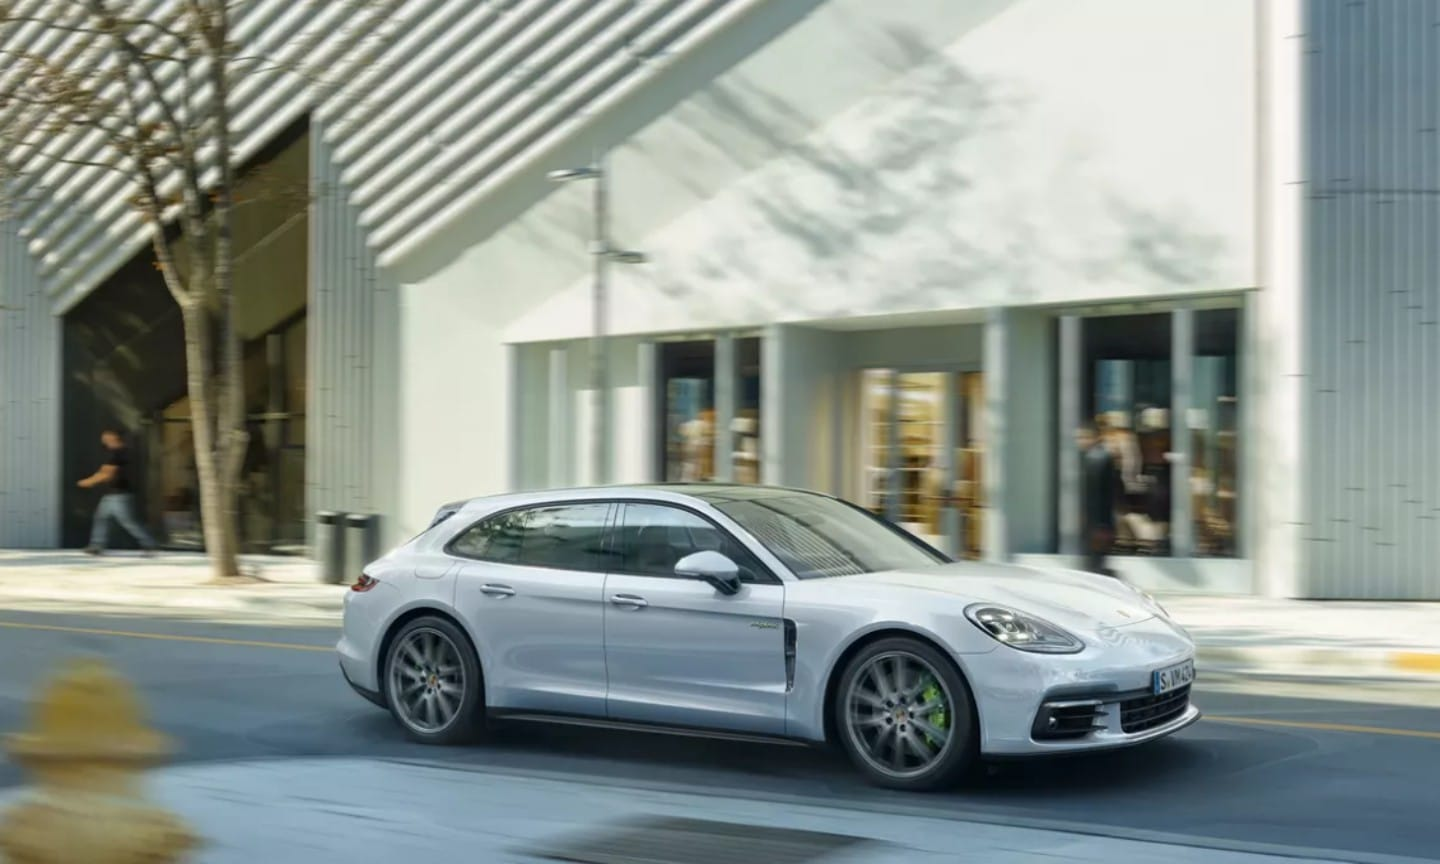 White Porsche Panamera on a city street